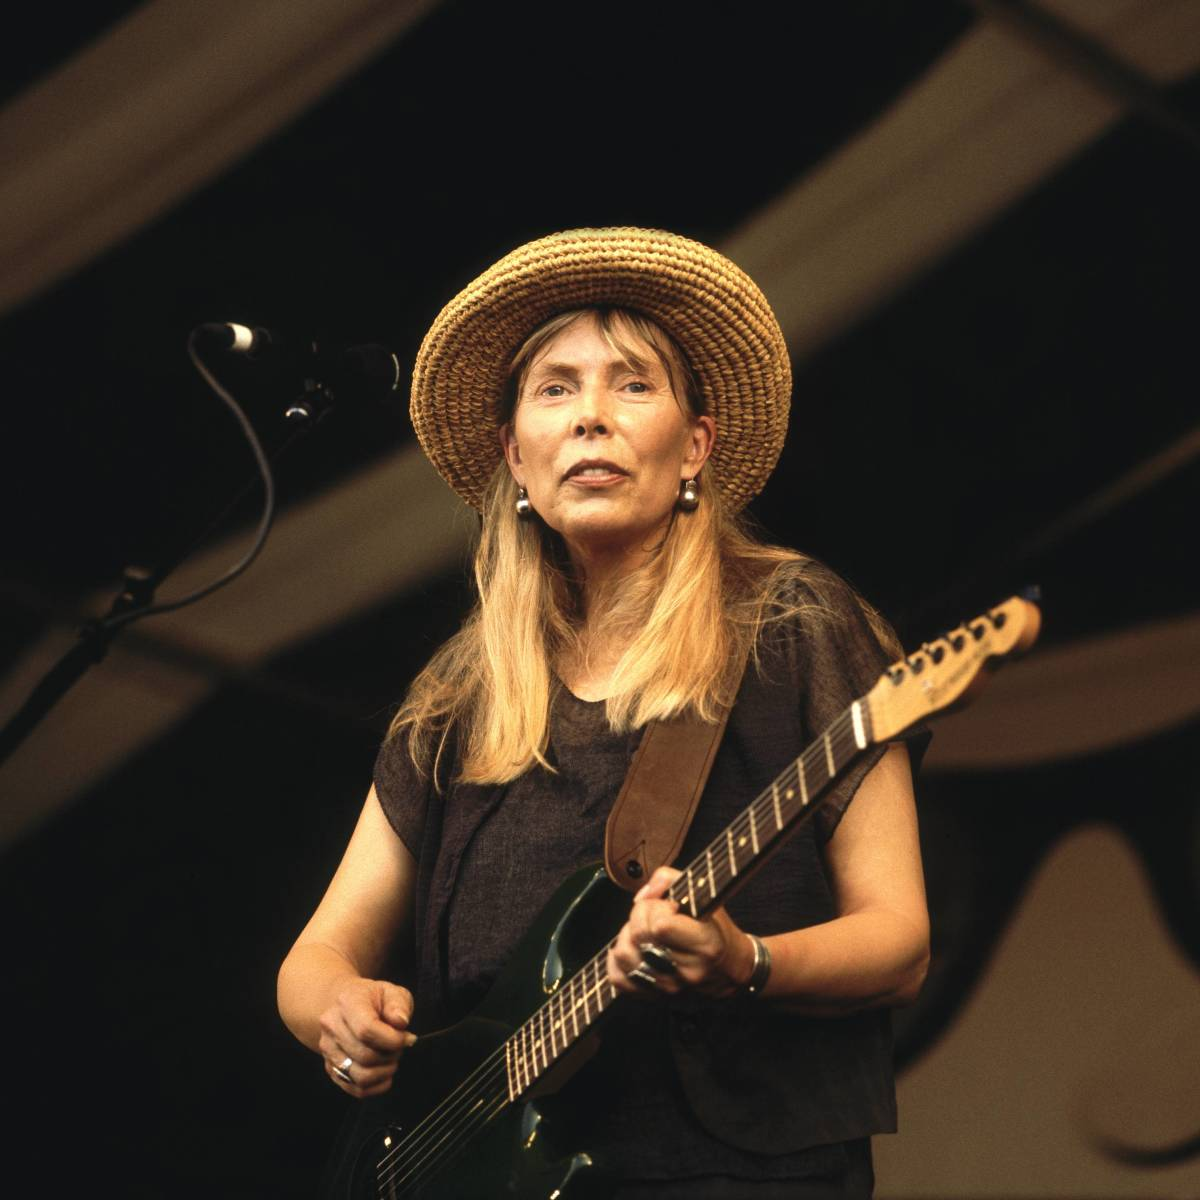 Joni Mitchell in 2001 Photo by David Redfern/Redferns) Restrictions